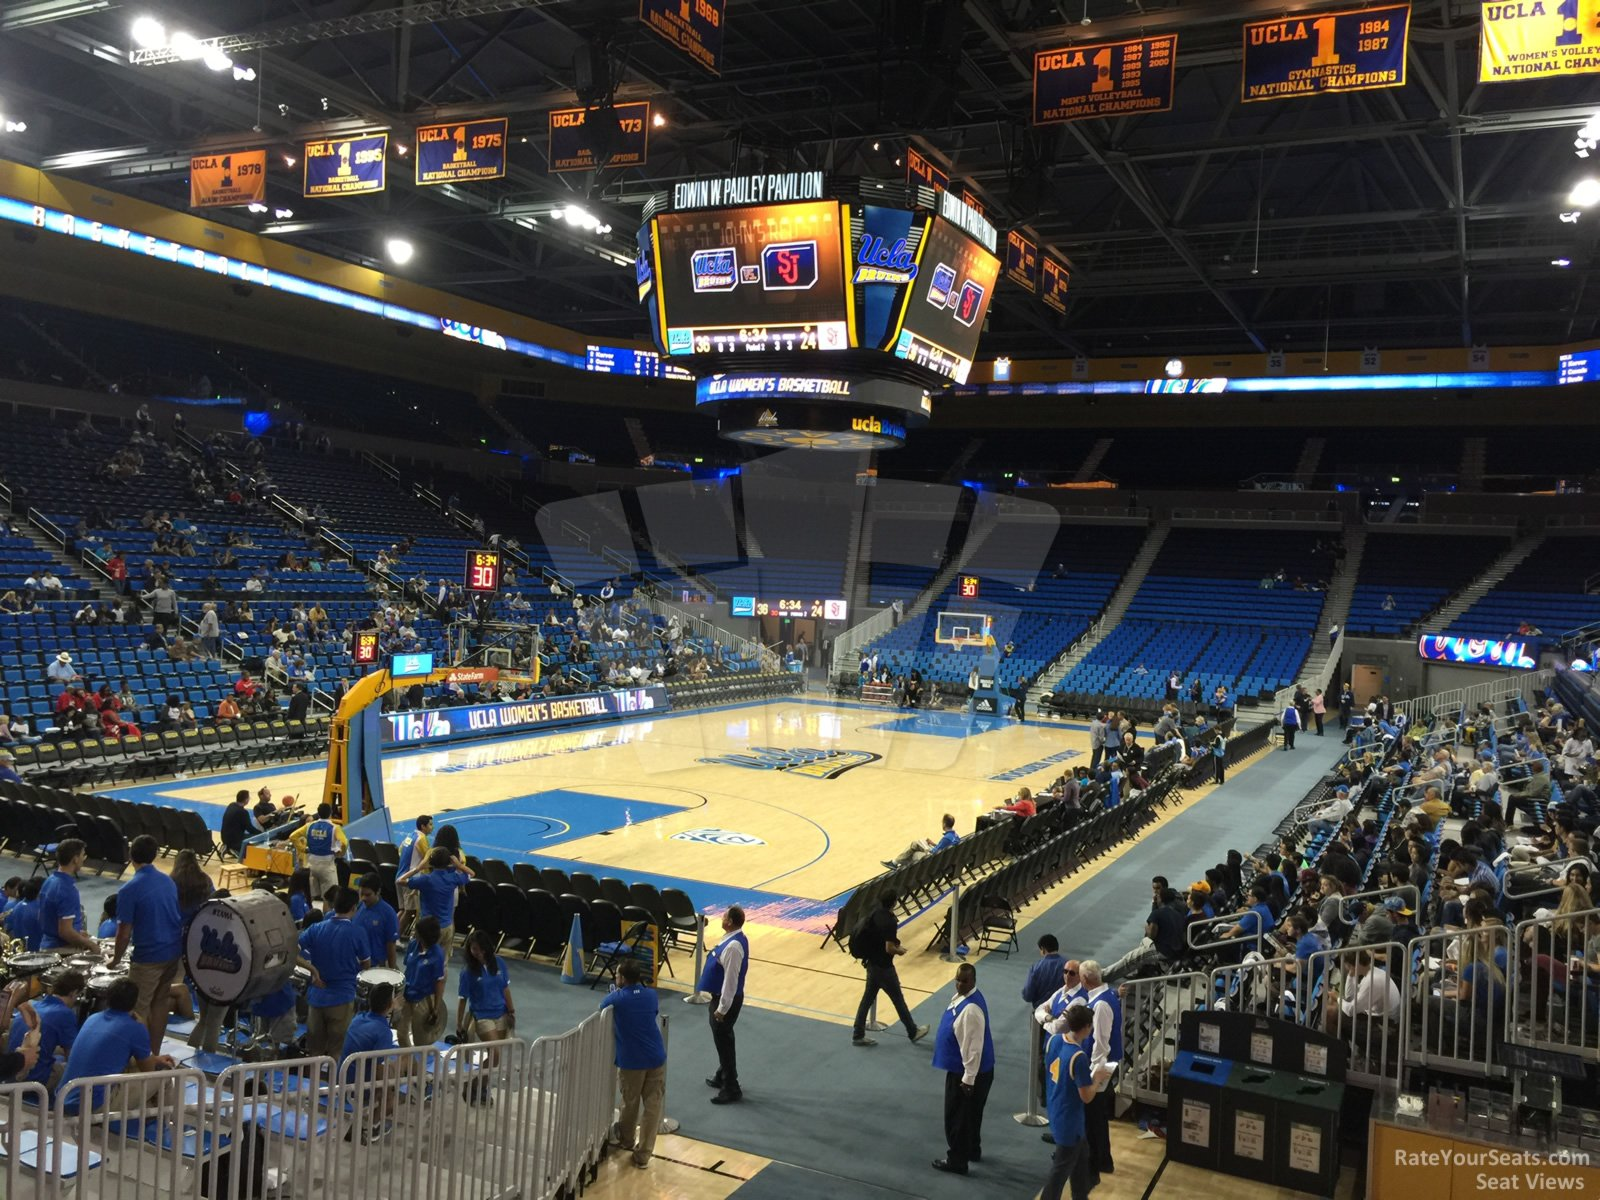 Seat View for Pauley Pavilion Section 120, Row 3